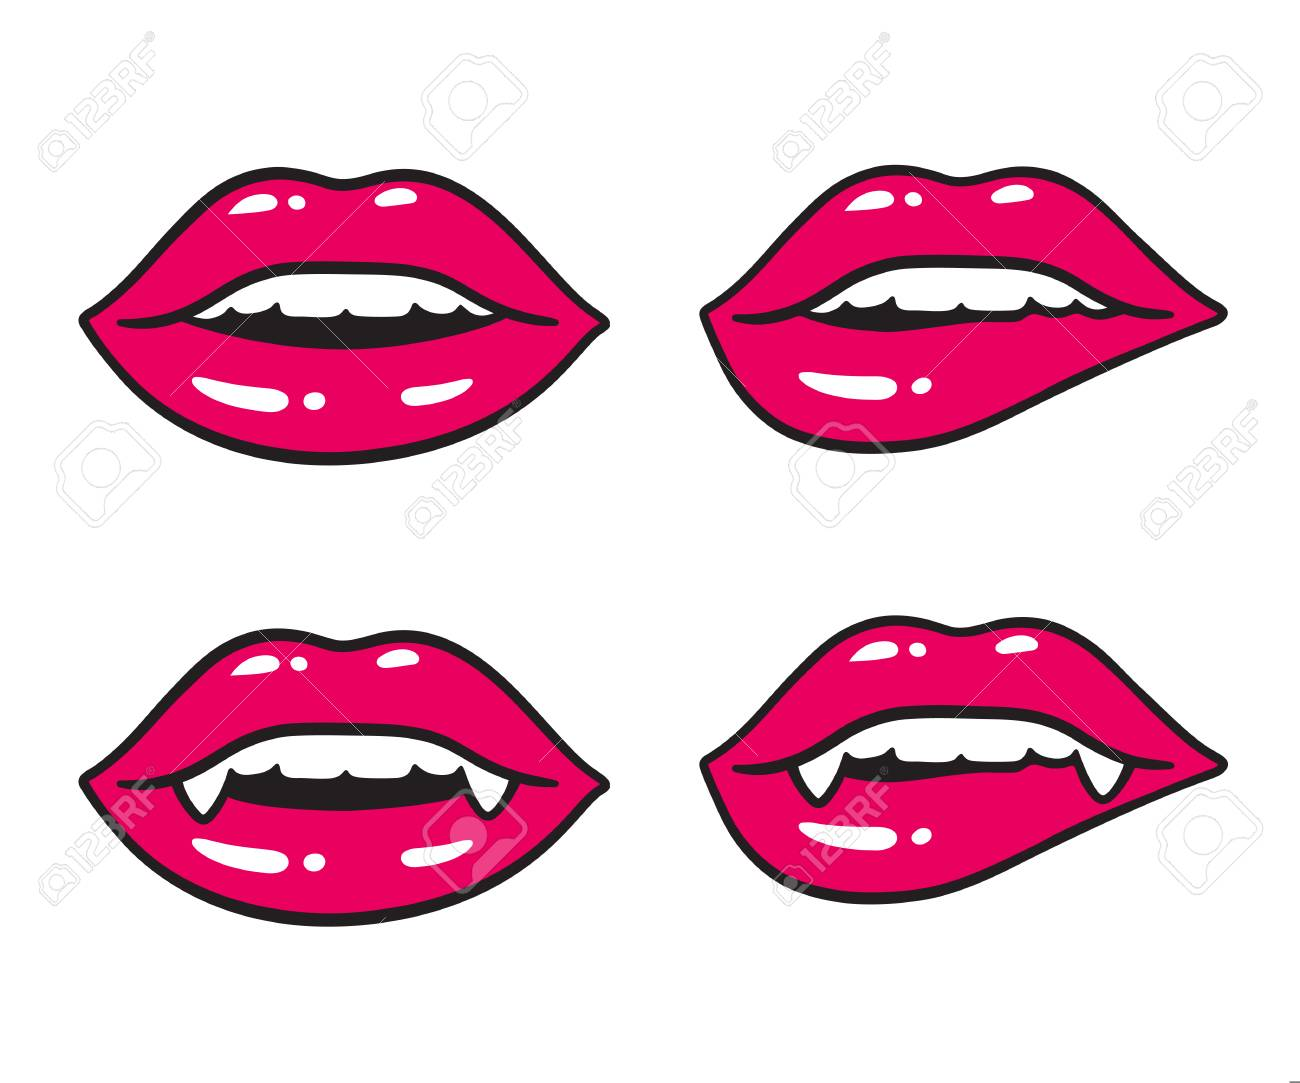 Sexy Lips Illustration Set Vampire Mouth With Fangs And Human Royalty Free Cliparts Vectors And Stock Illustration Image 114514407